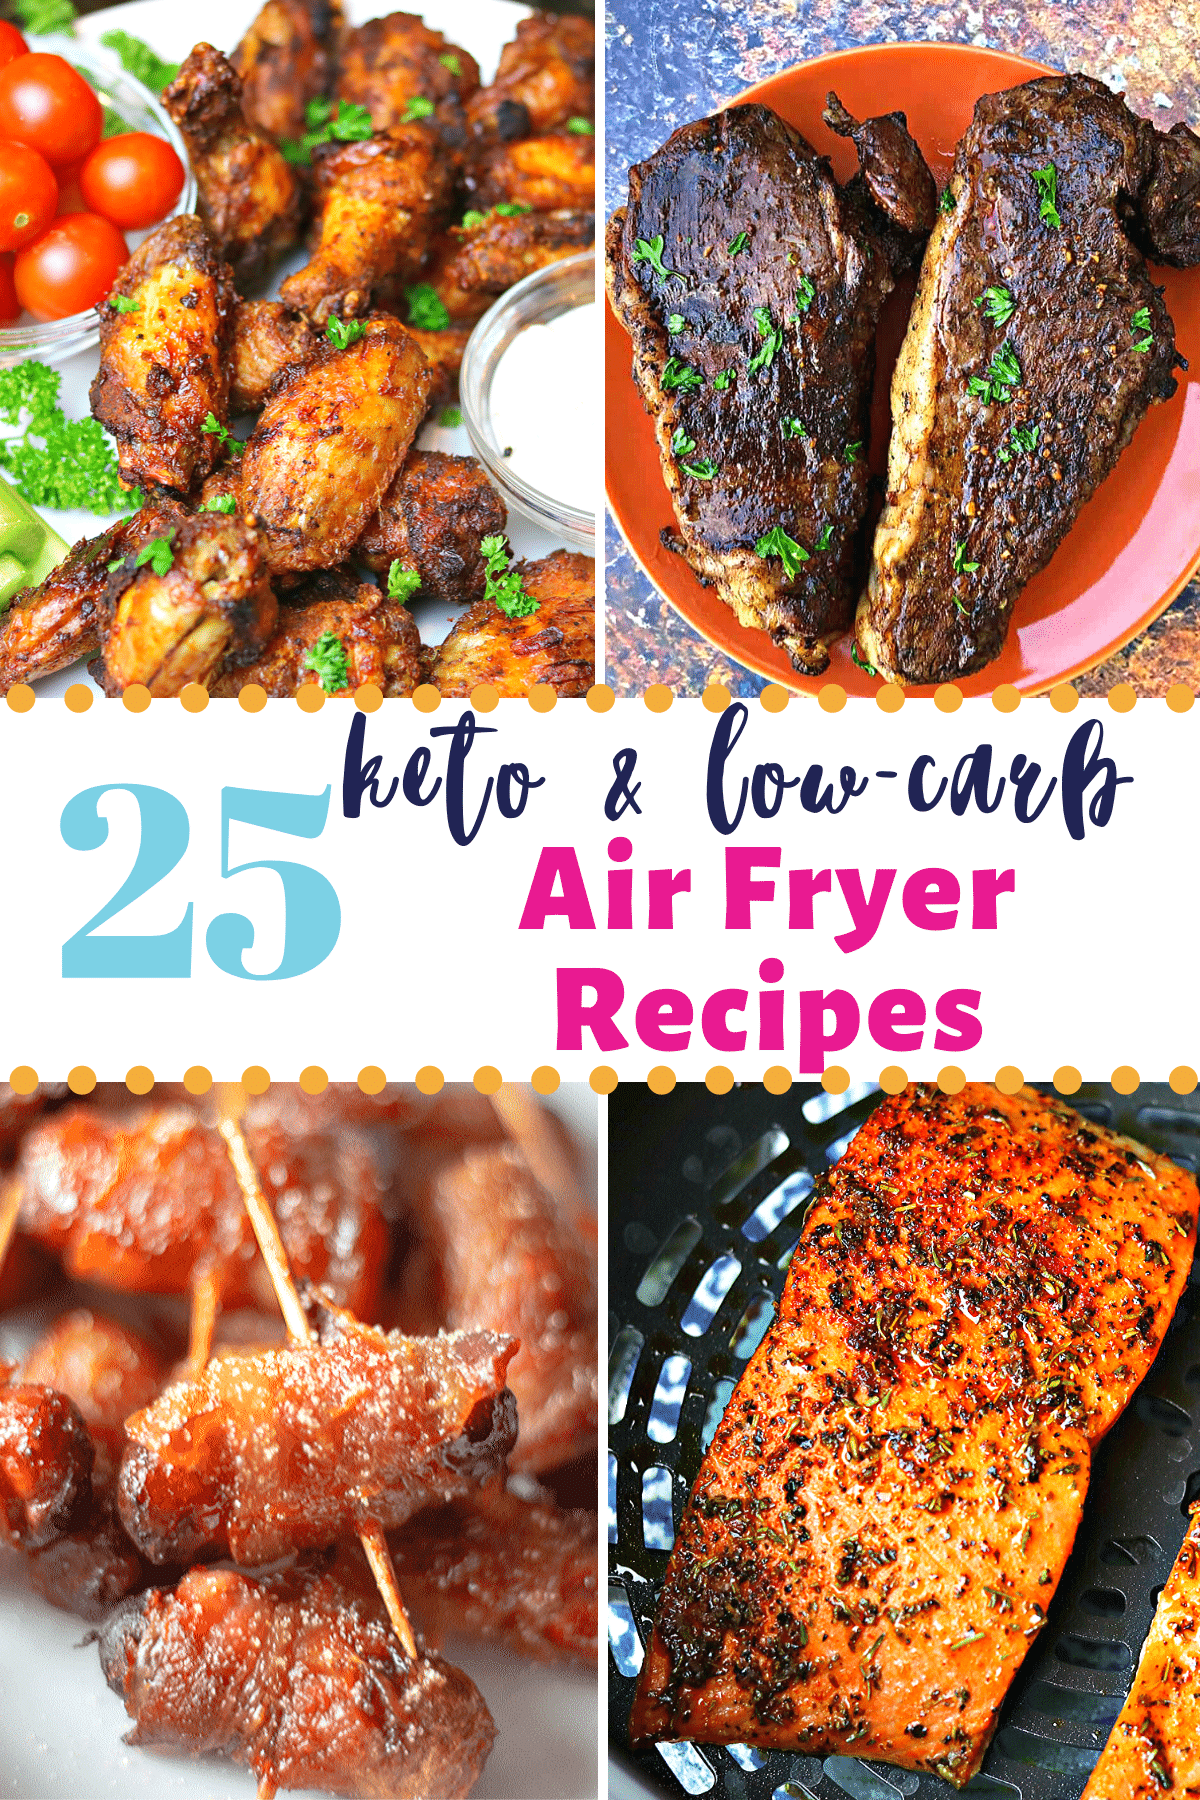 25 Easy Lowcarb & Keto Air Fryer Recipes for Every Meal